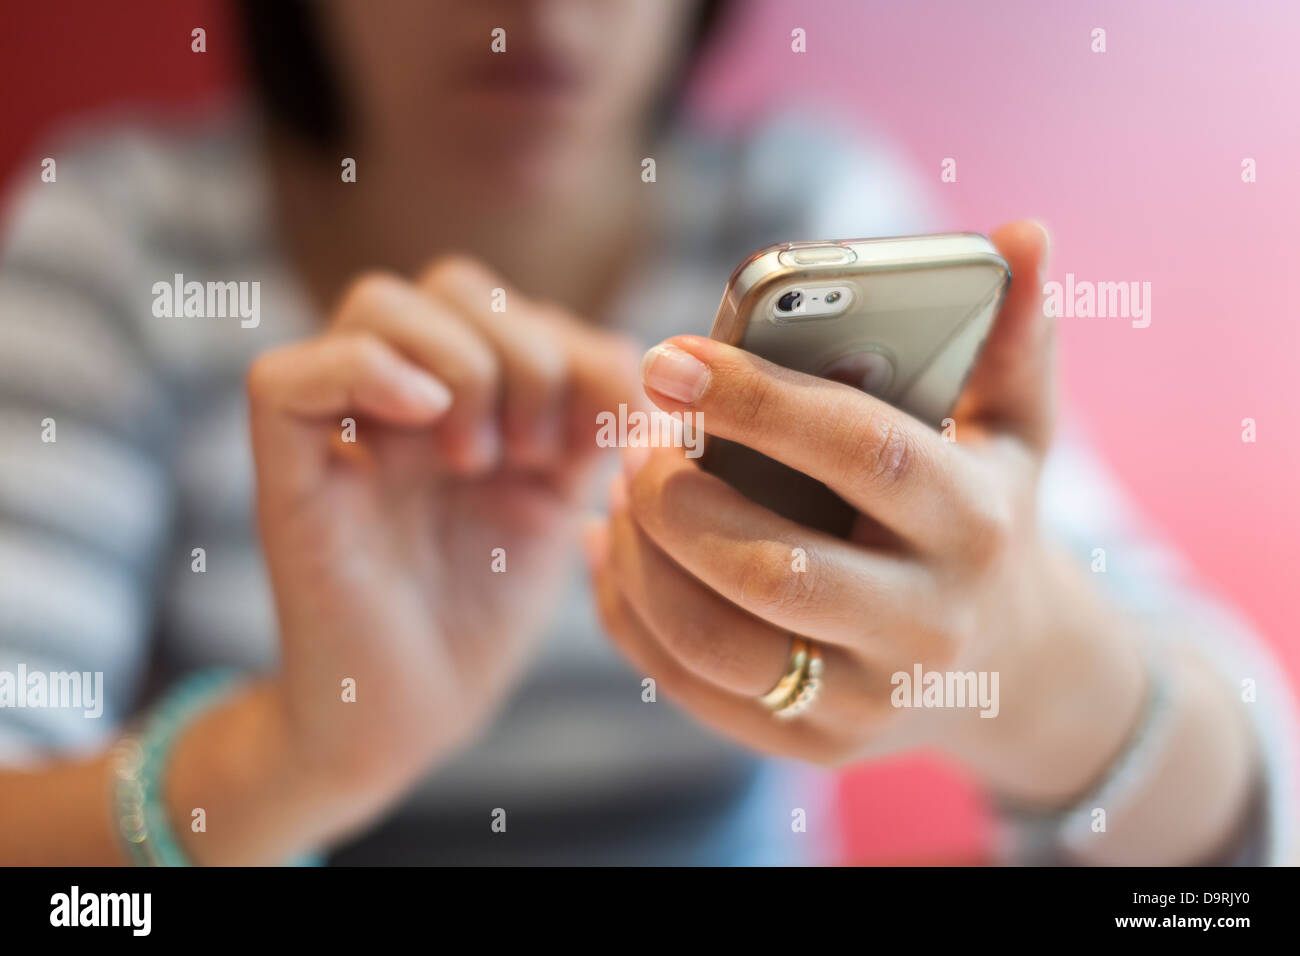 Woman using a touch screen mobile phone-selective focus - Stock Image